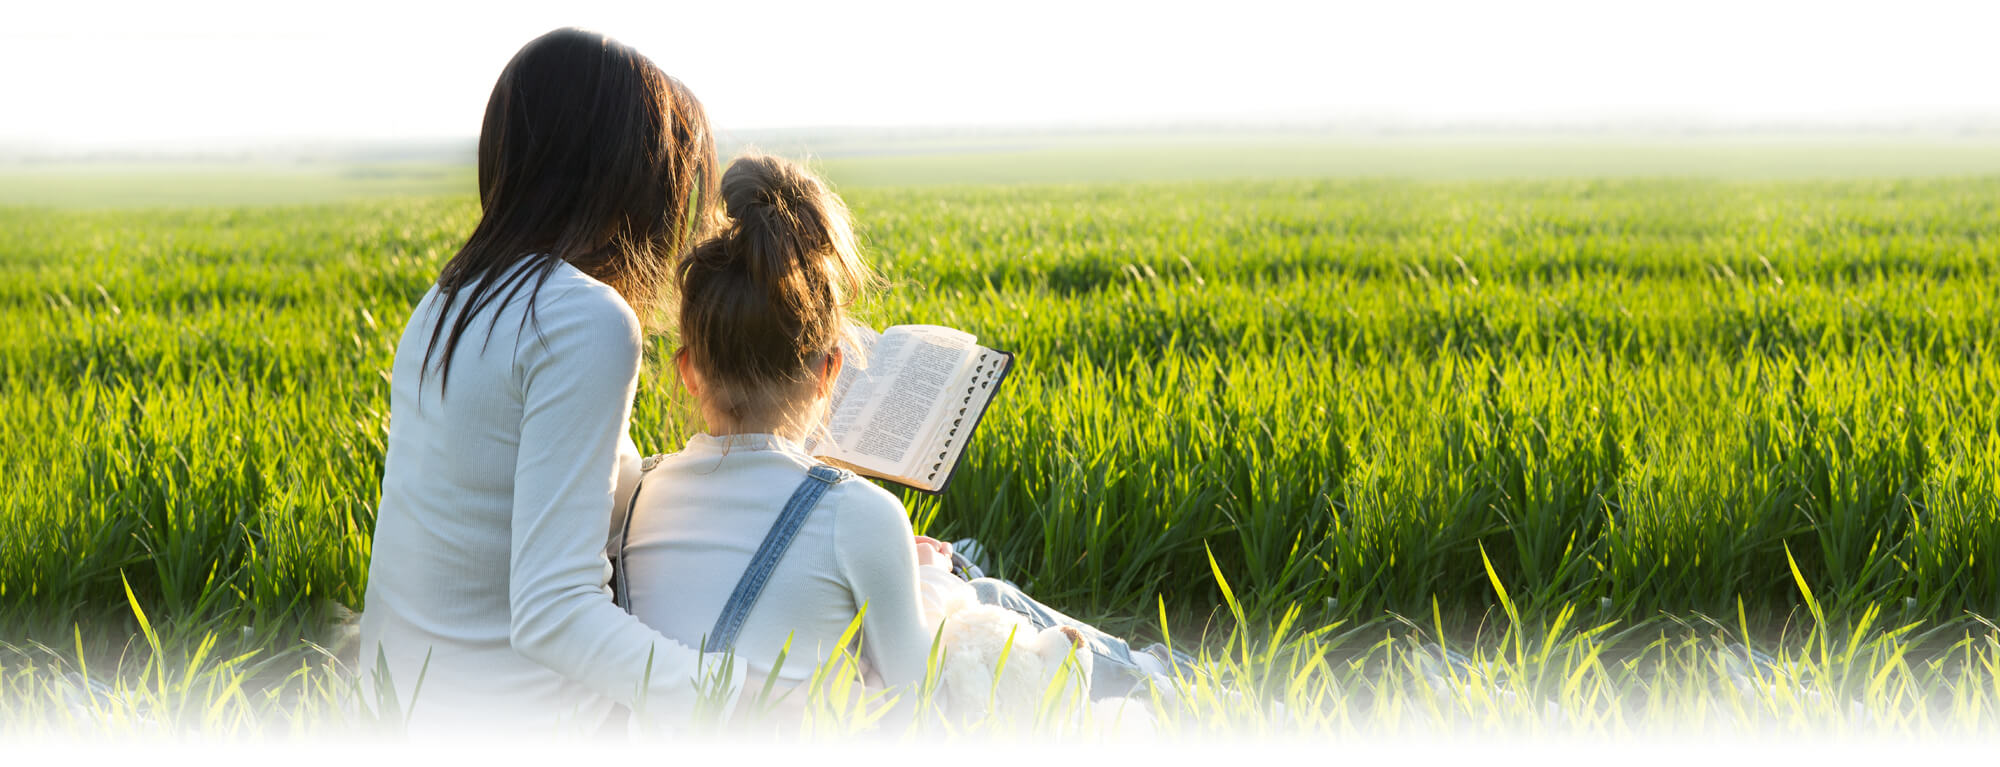 mother and girl reading Bible in a field